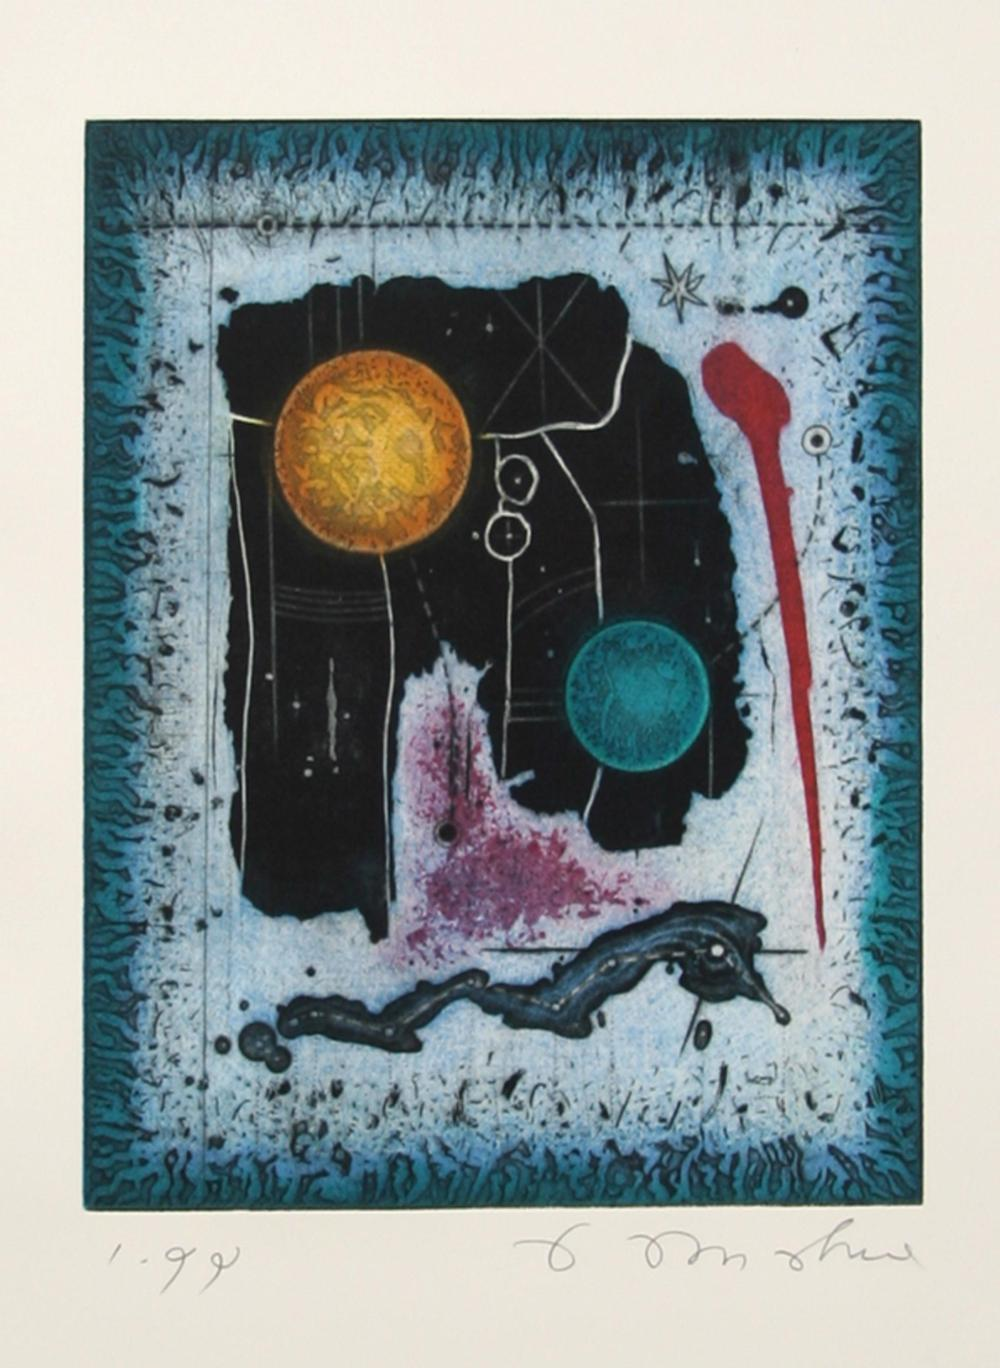 Tighe O'Donoghue, Planetary Abstract, Aquatint Etching